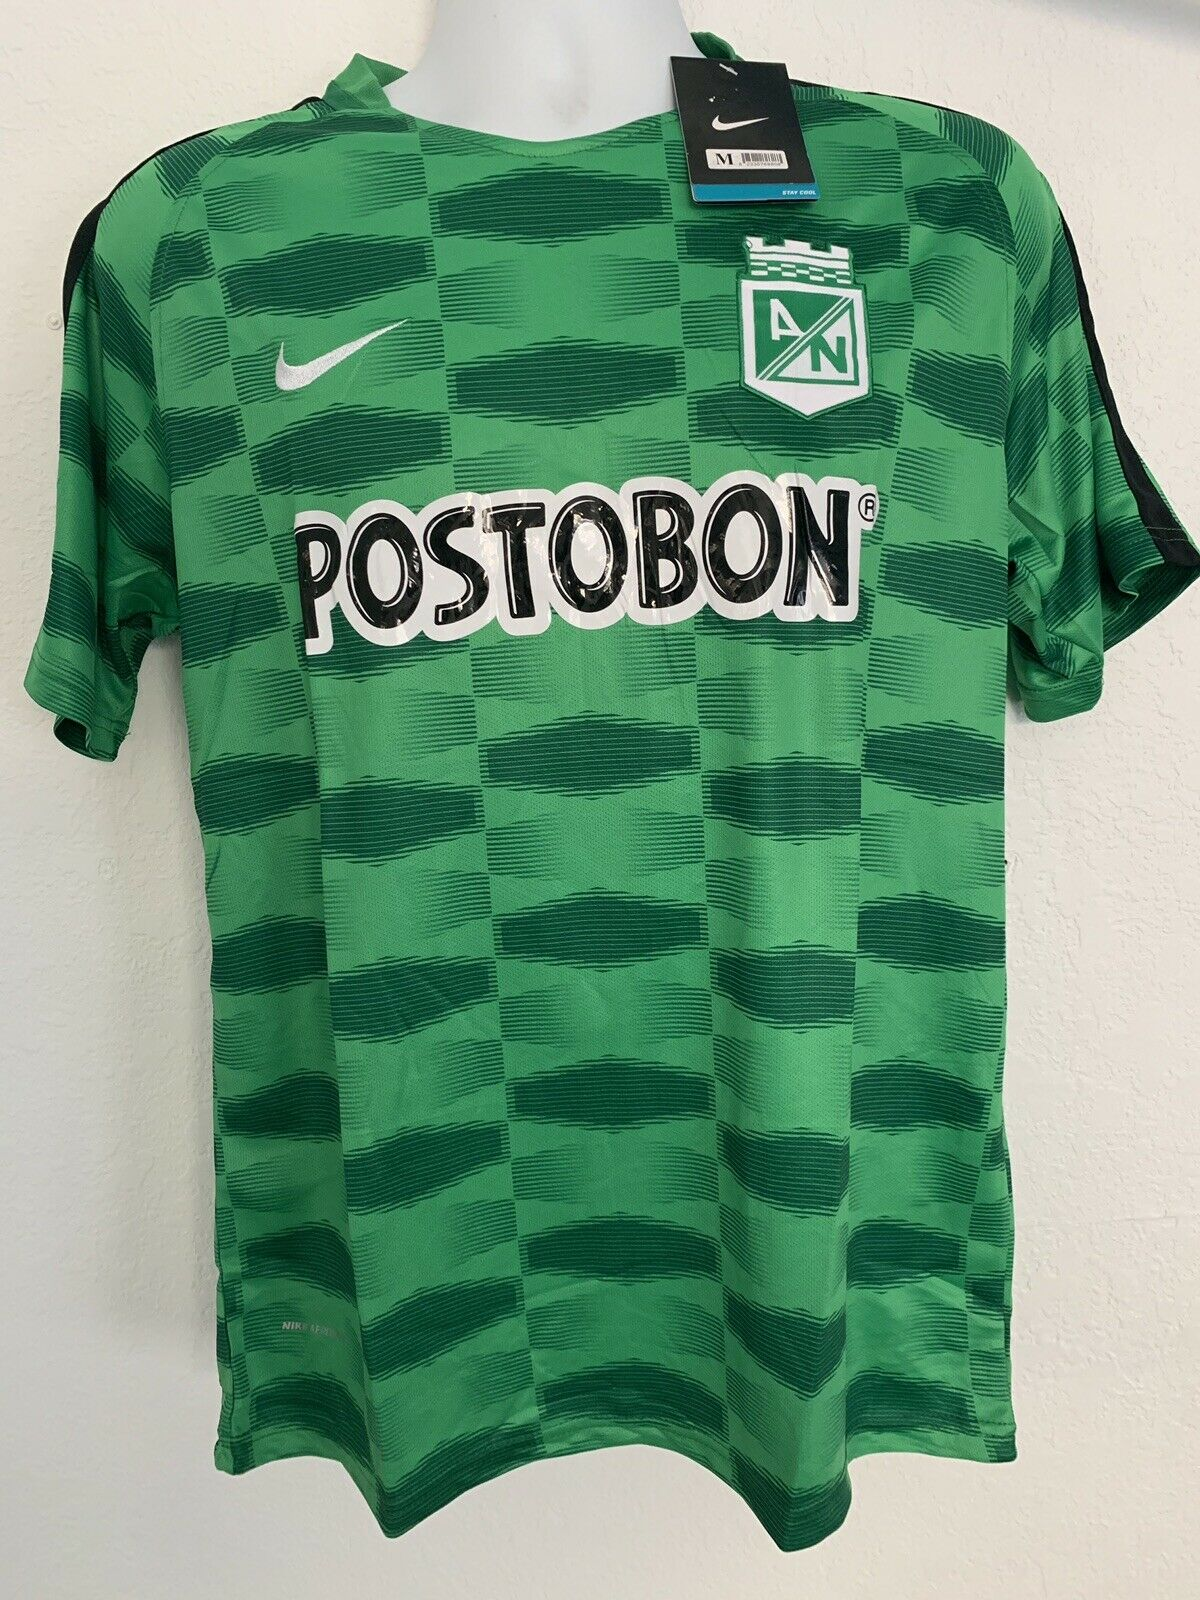 848dcea77 Atletico Nacional Jersey - Colombia - - - Sizes Available S- M- L- XL 64f906